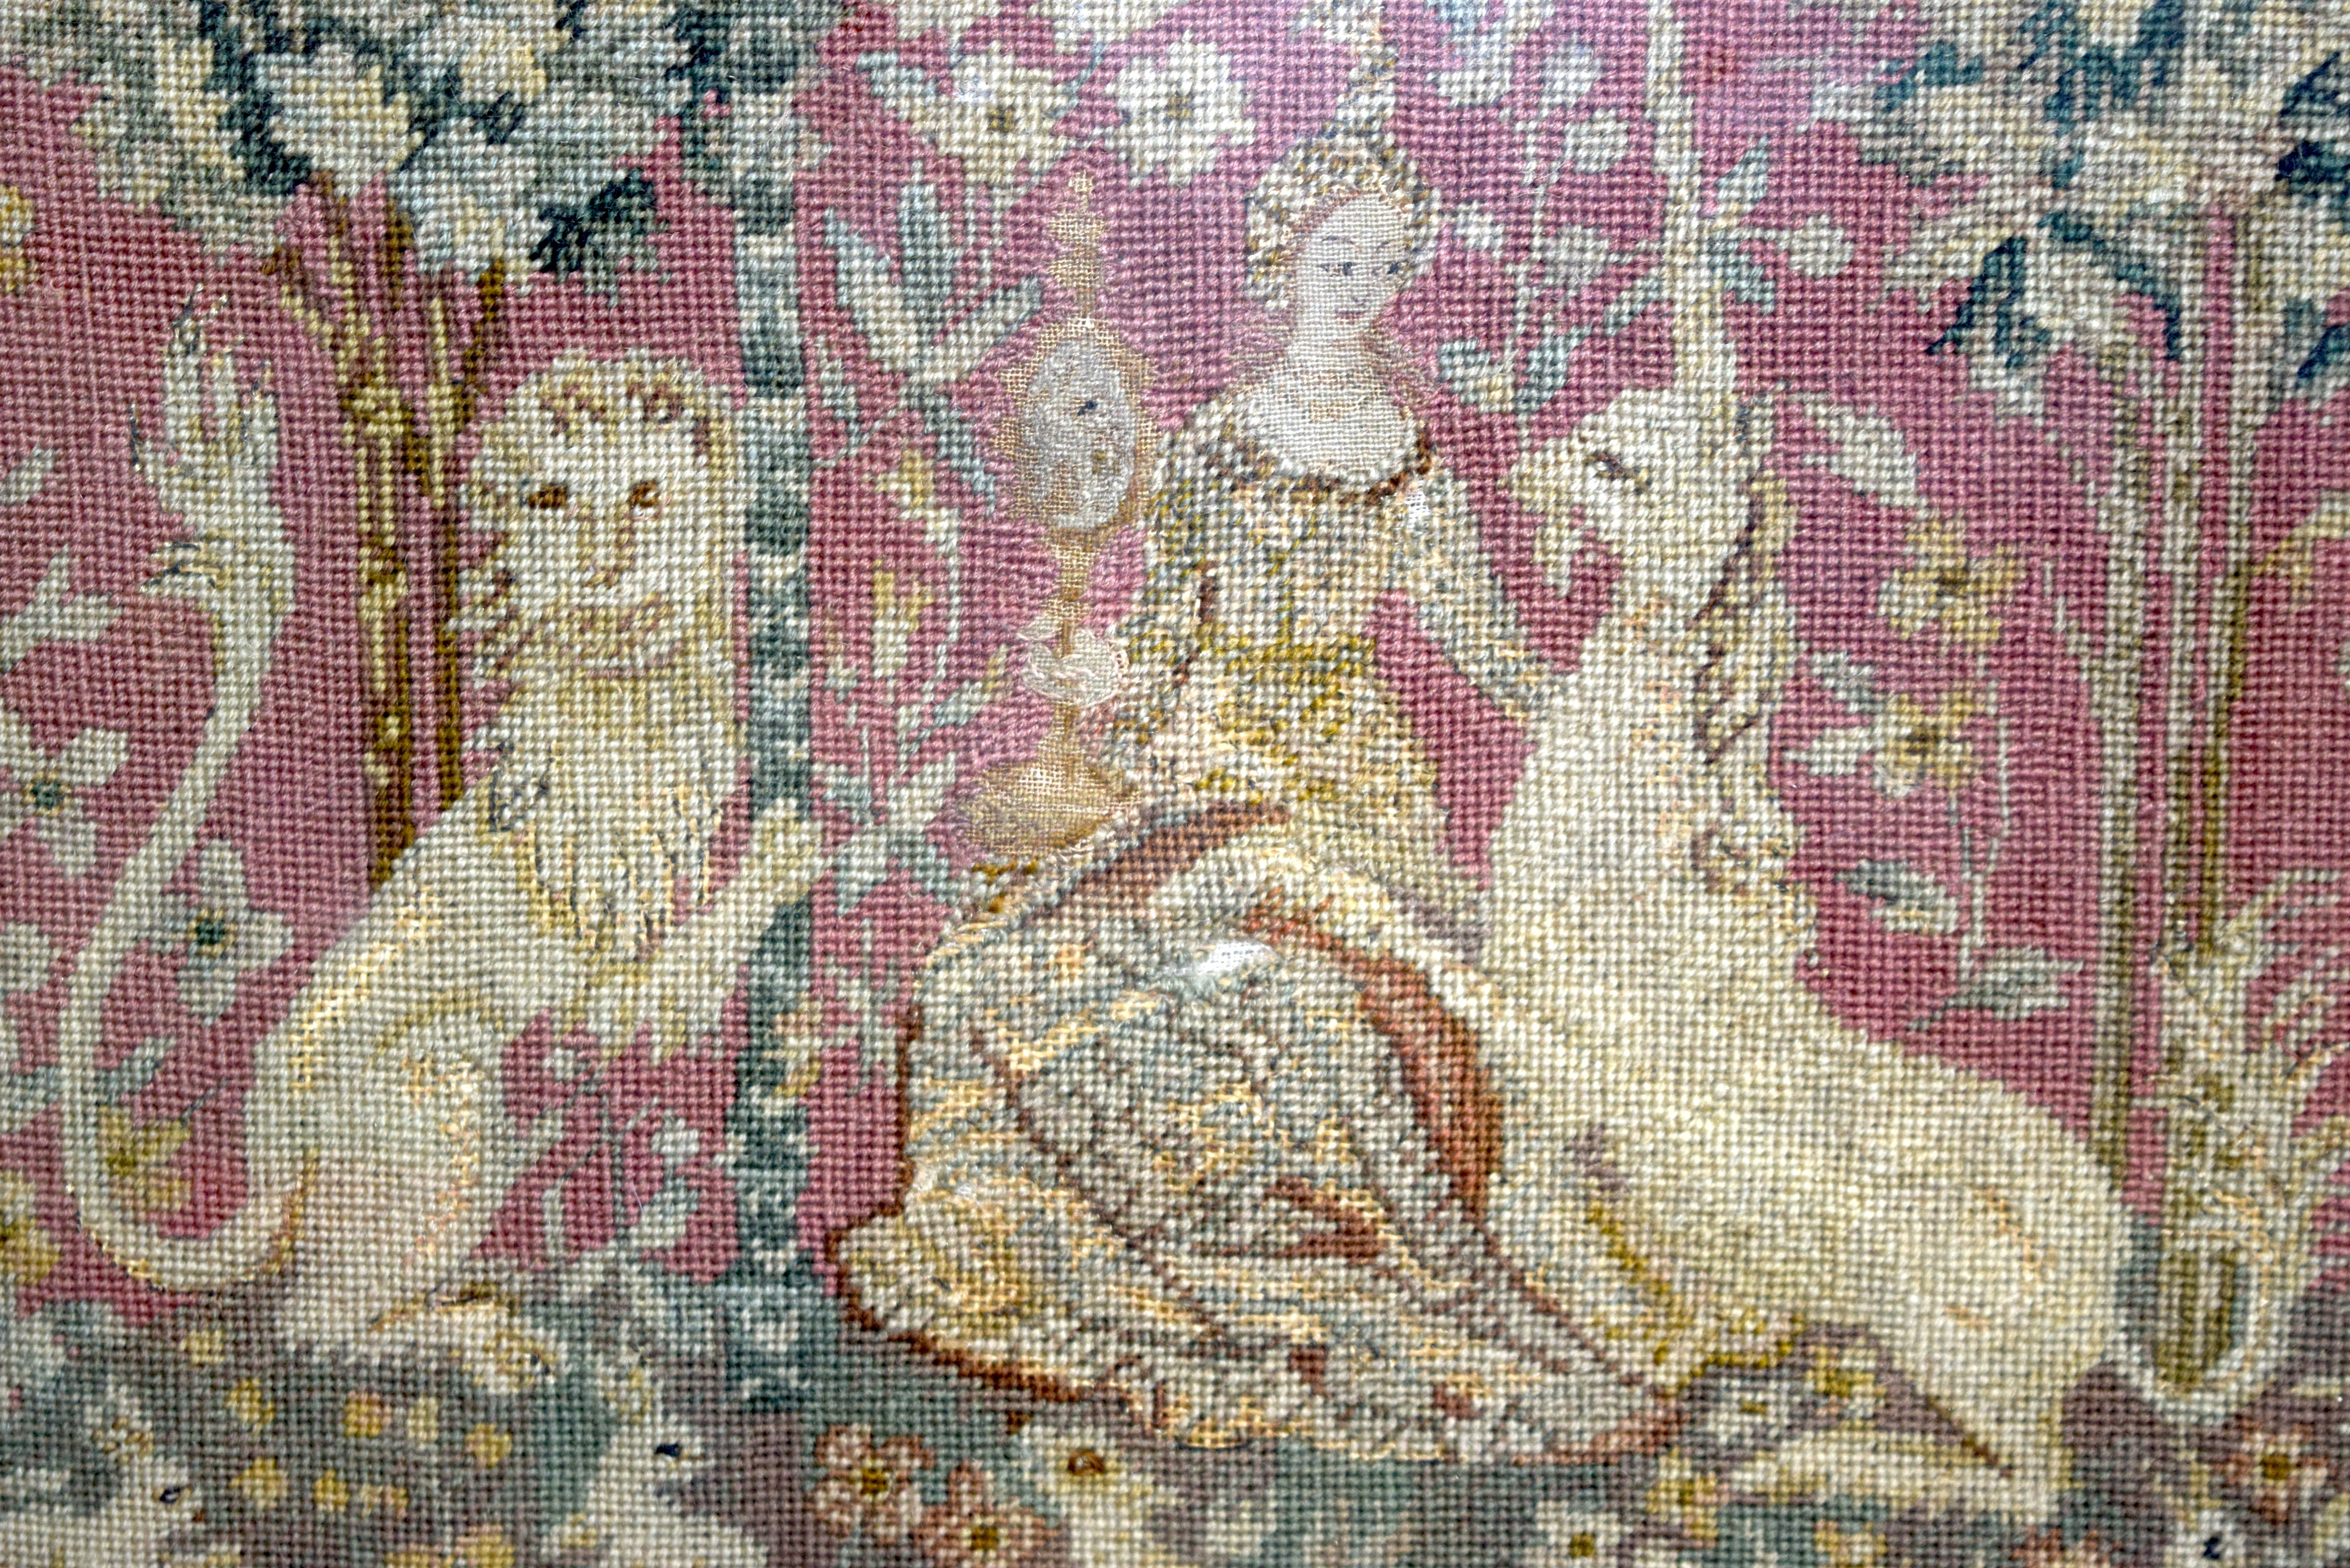 Framed tapestry of a Queen showing a standard and unicorn 94 x 56cm.. - Image 2 of 3